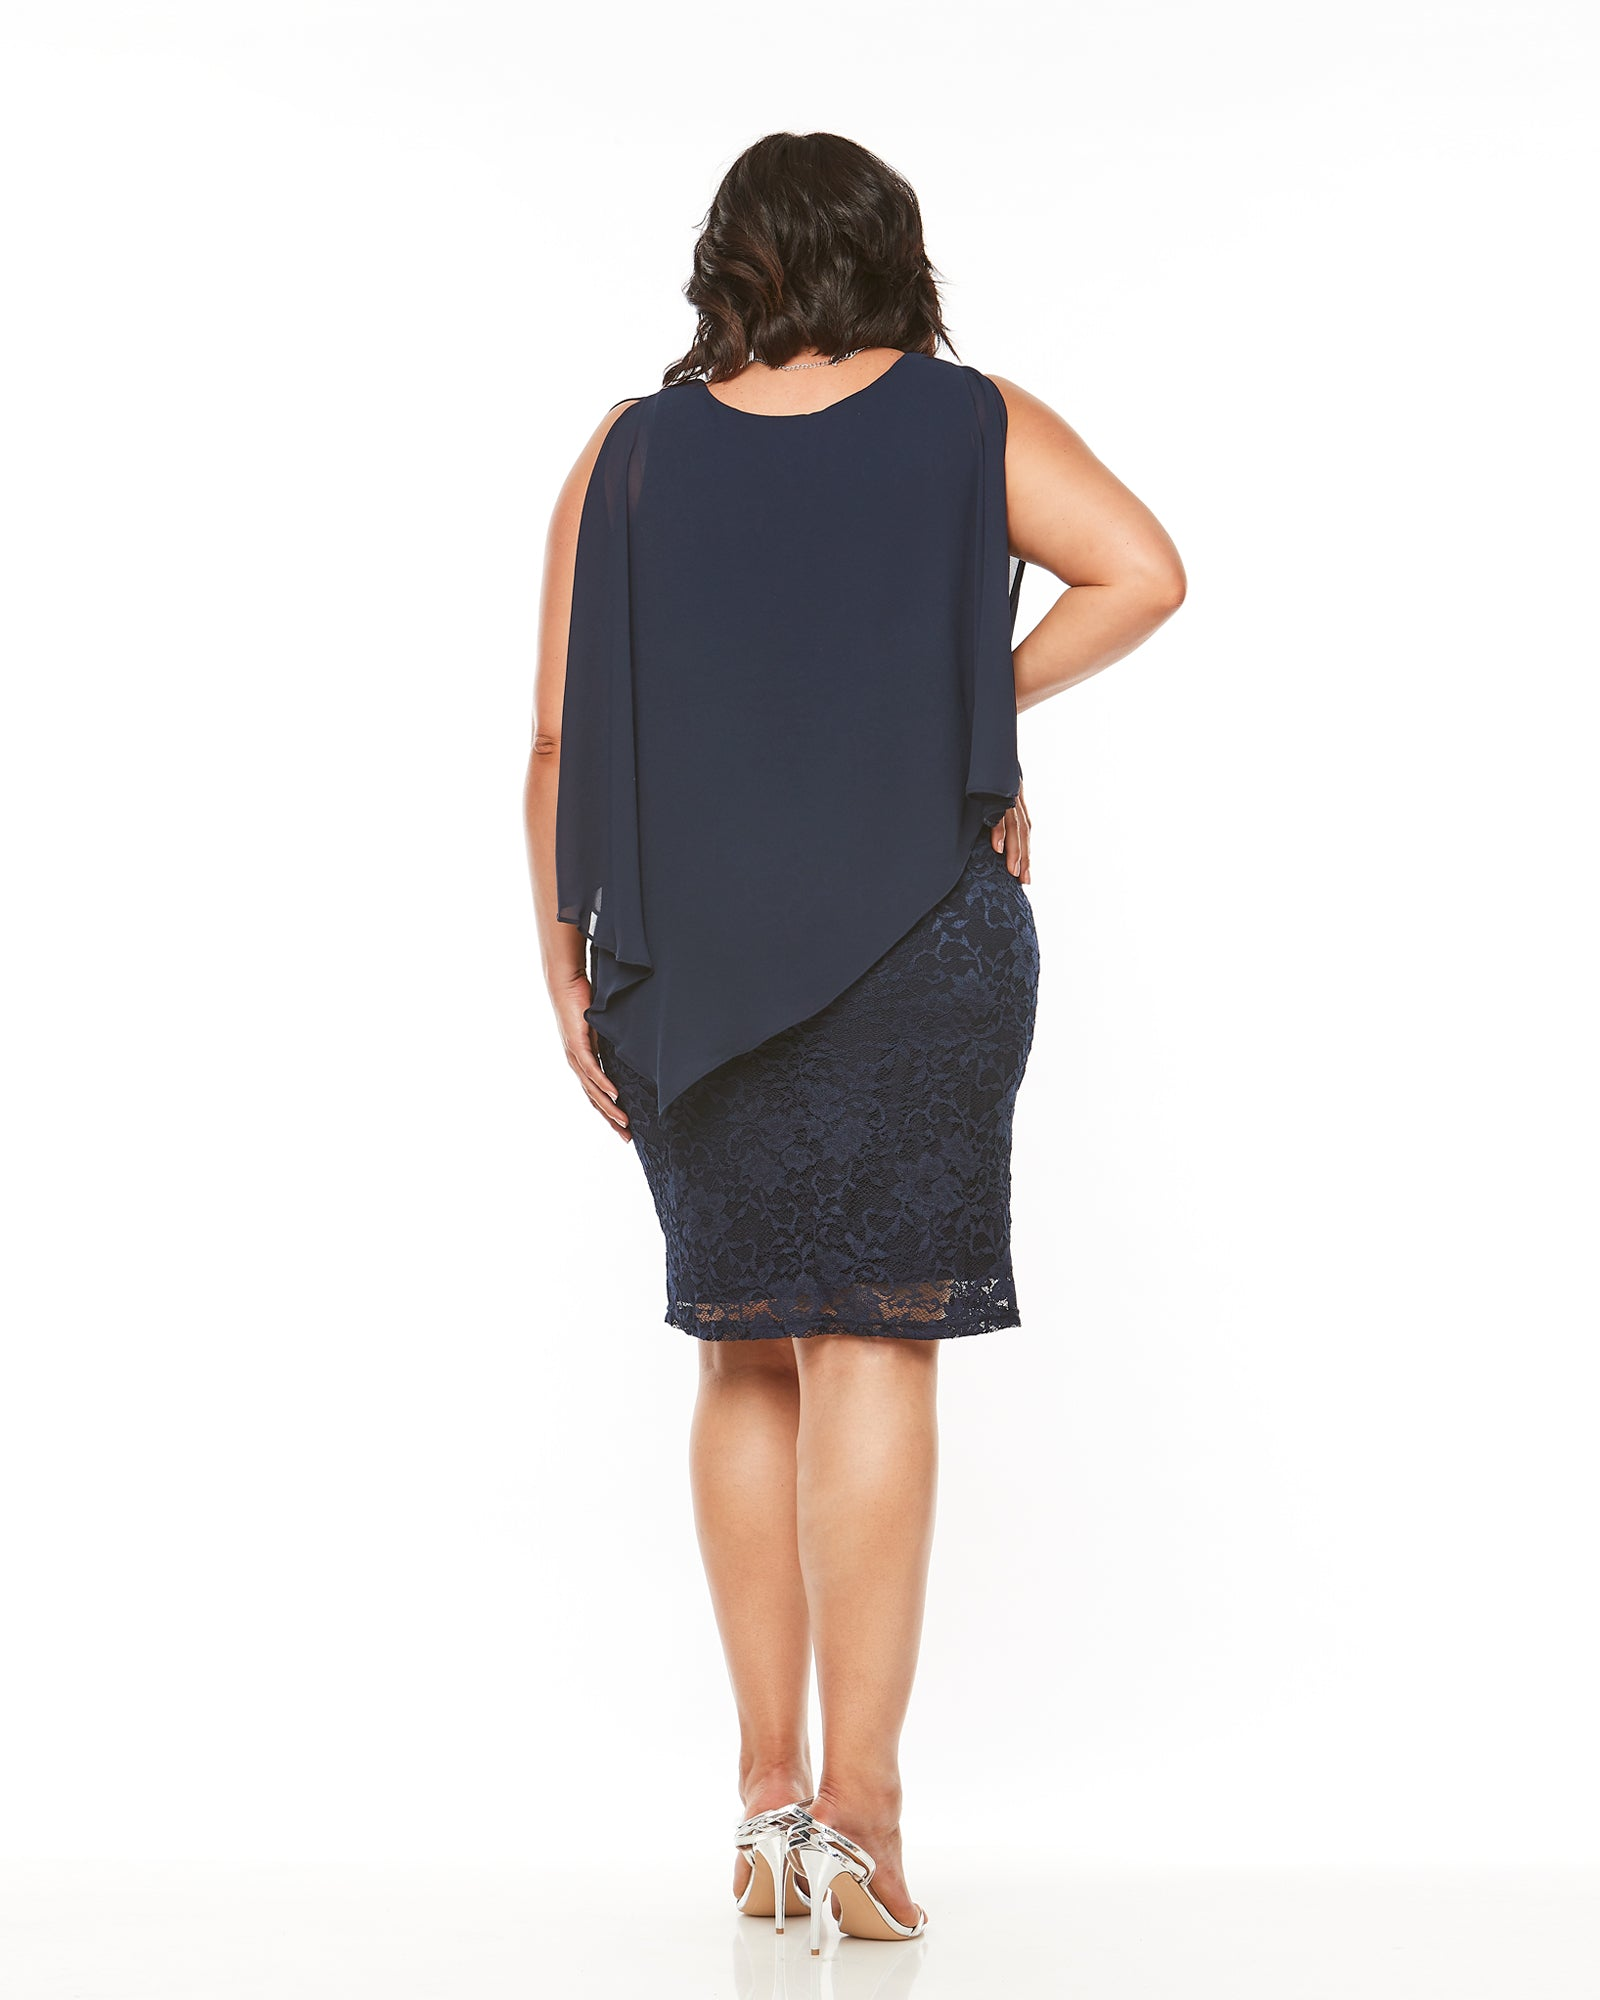 Julie Lace Dress -Navy- Size 12-26 PRE ORDER END SEPT